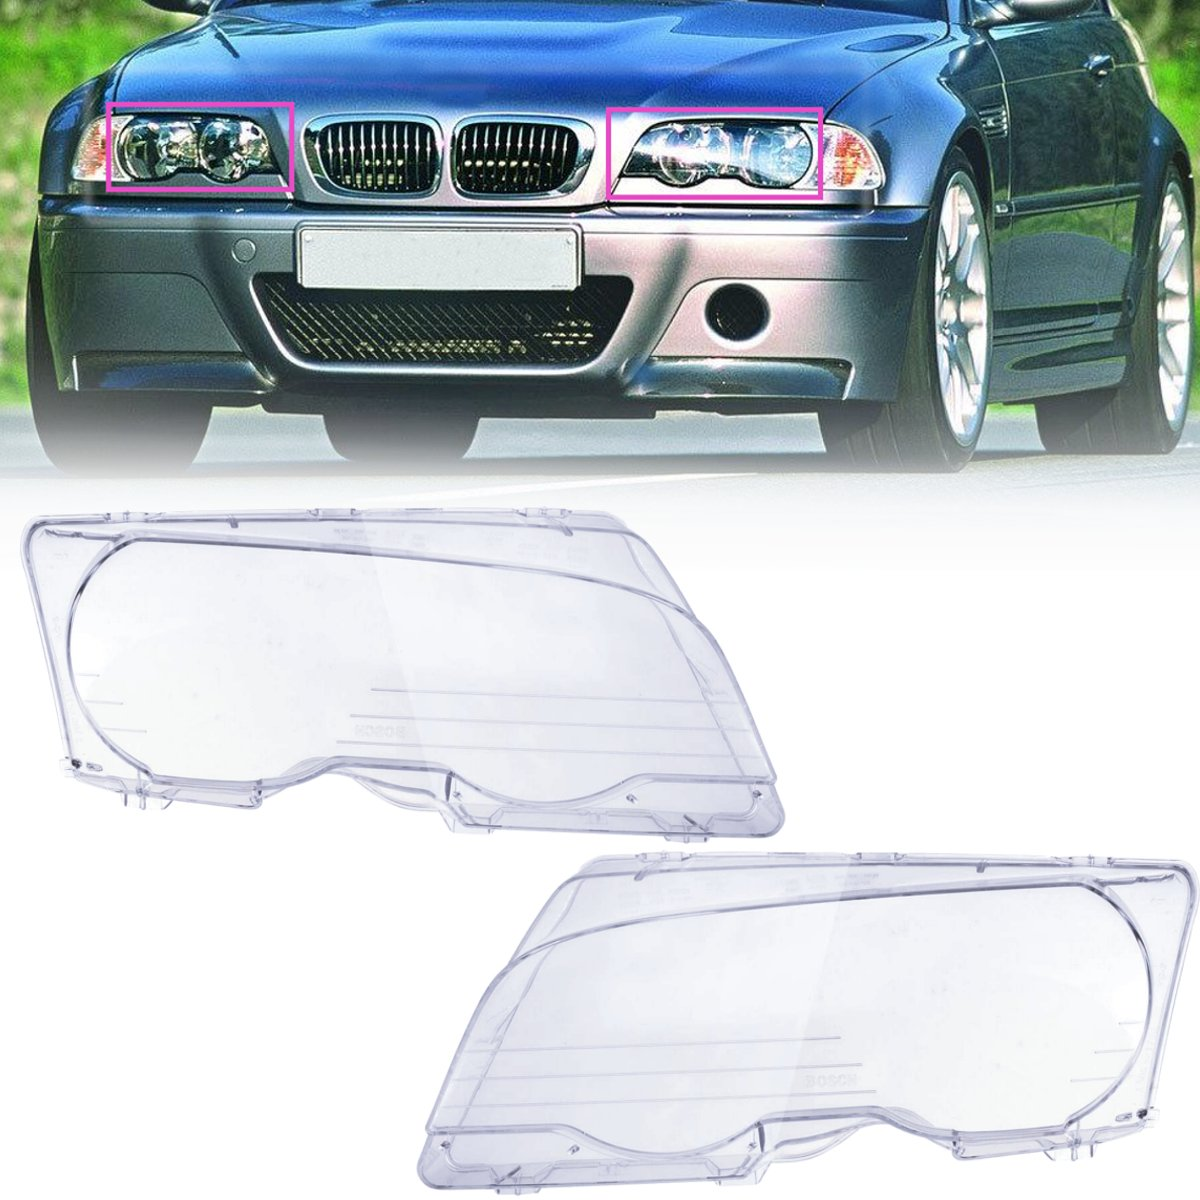 1 Pair Car Headlight Clear Lens Headlamp Clear Cover Coupe Convertible For BMW E46 2DR 1999-2003 M3 2001-2006 bmw 645 ci cabrio convertible 1 24